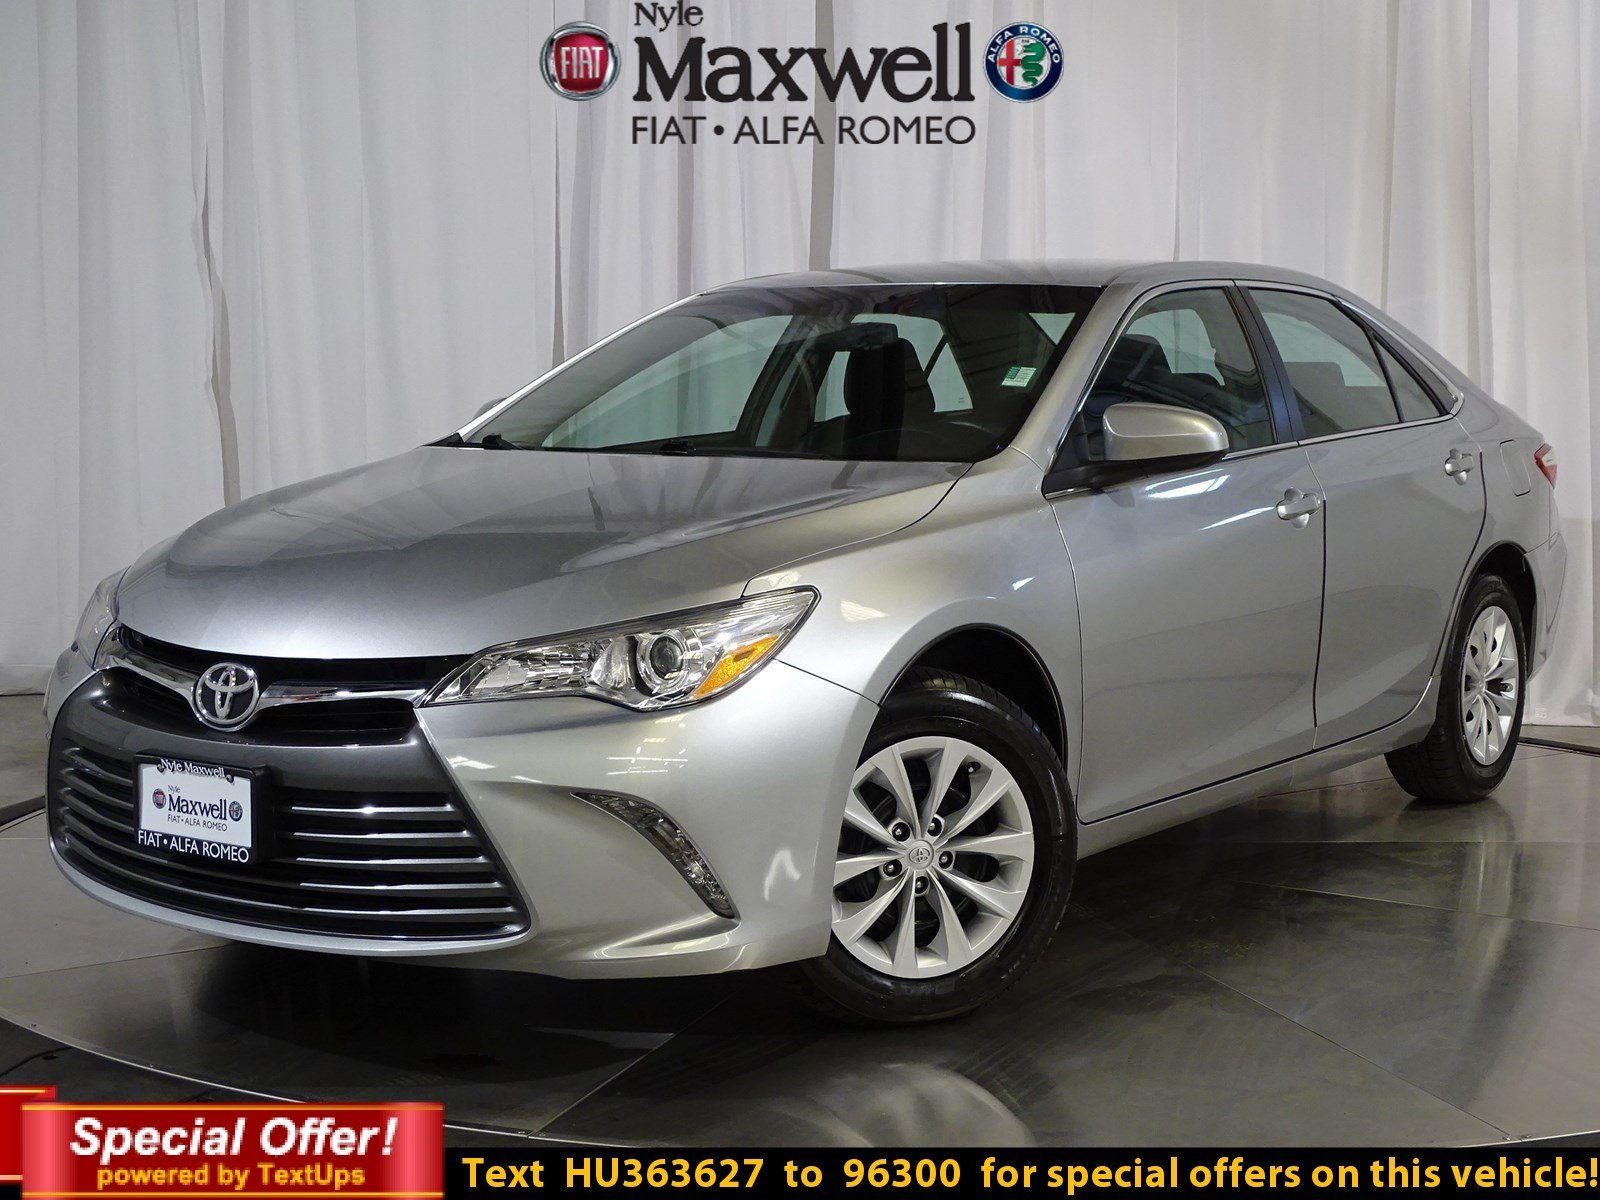 Https Www Nylemaxwellcdjr Inventory Used 2017 Toyota Camry Le Fwd 4dr Car 4t1bf1fk7hu363627